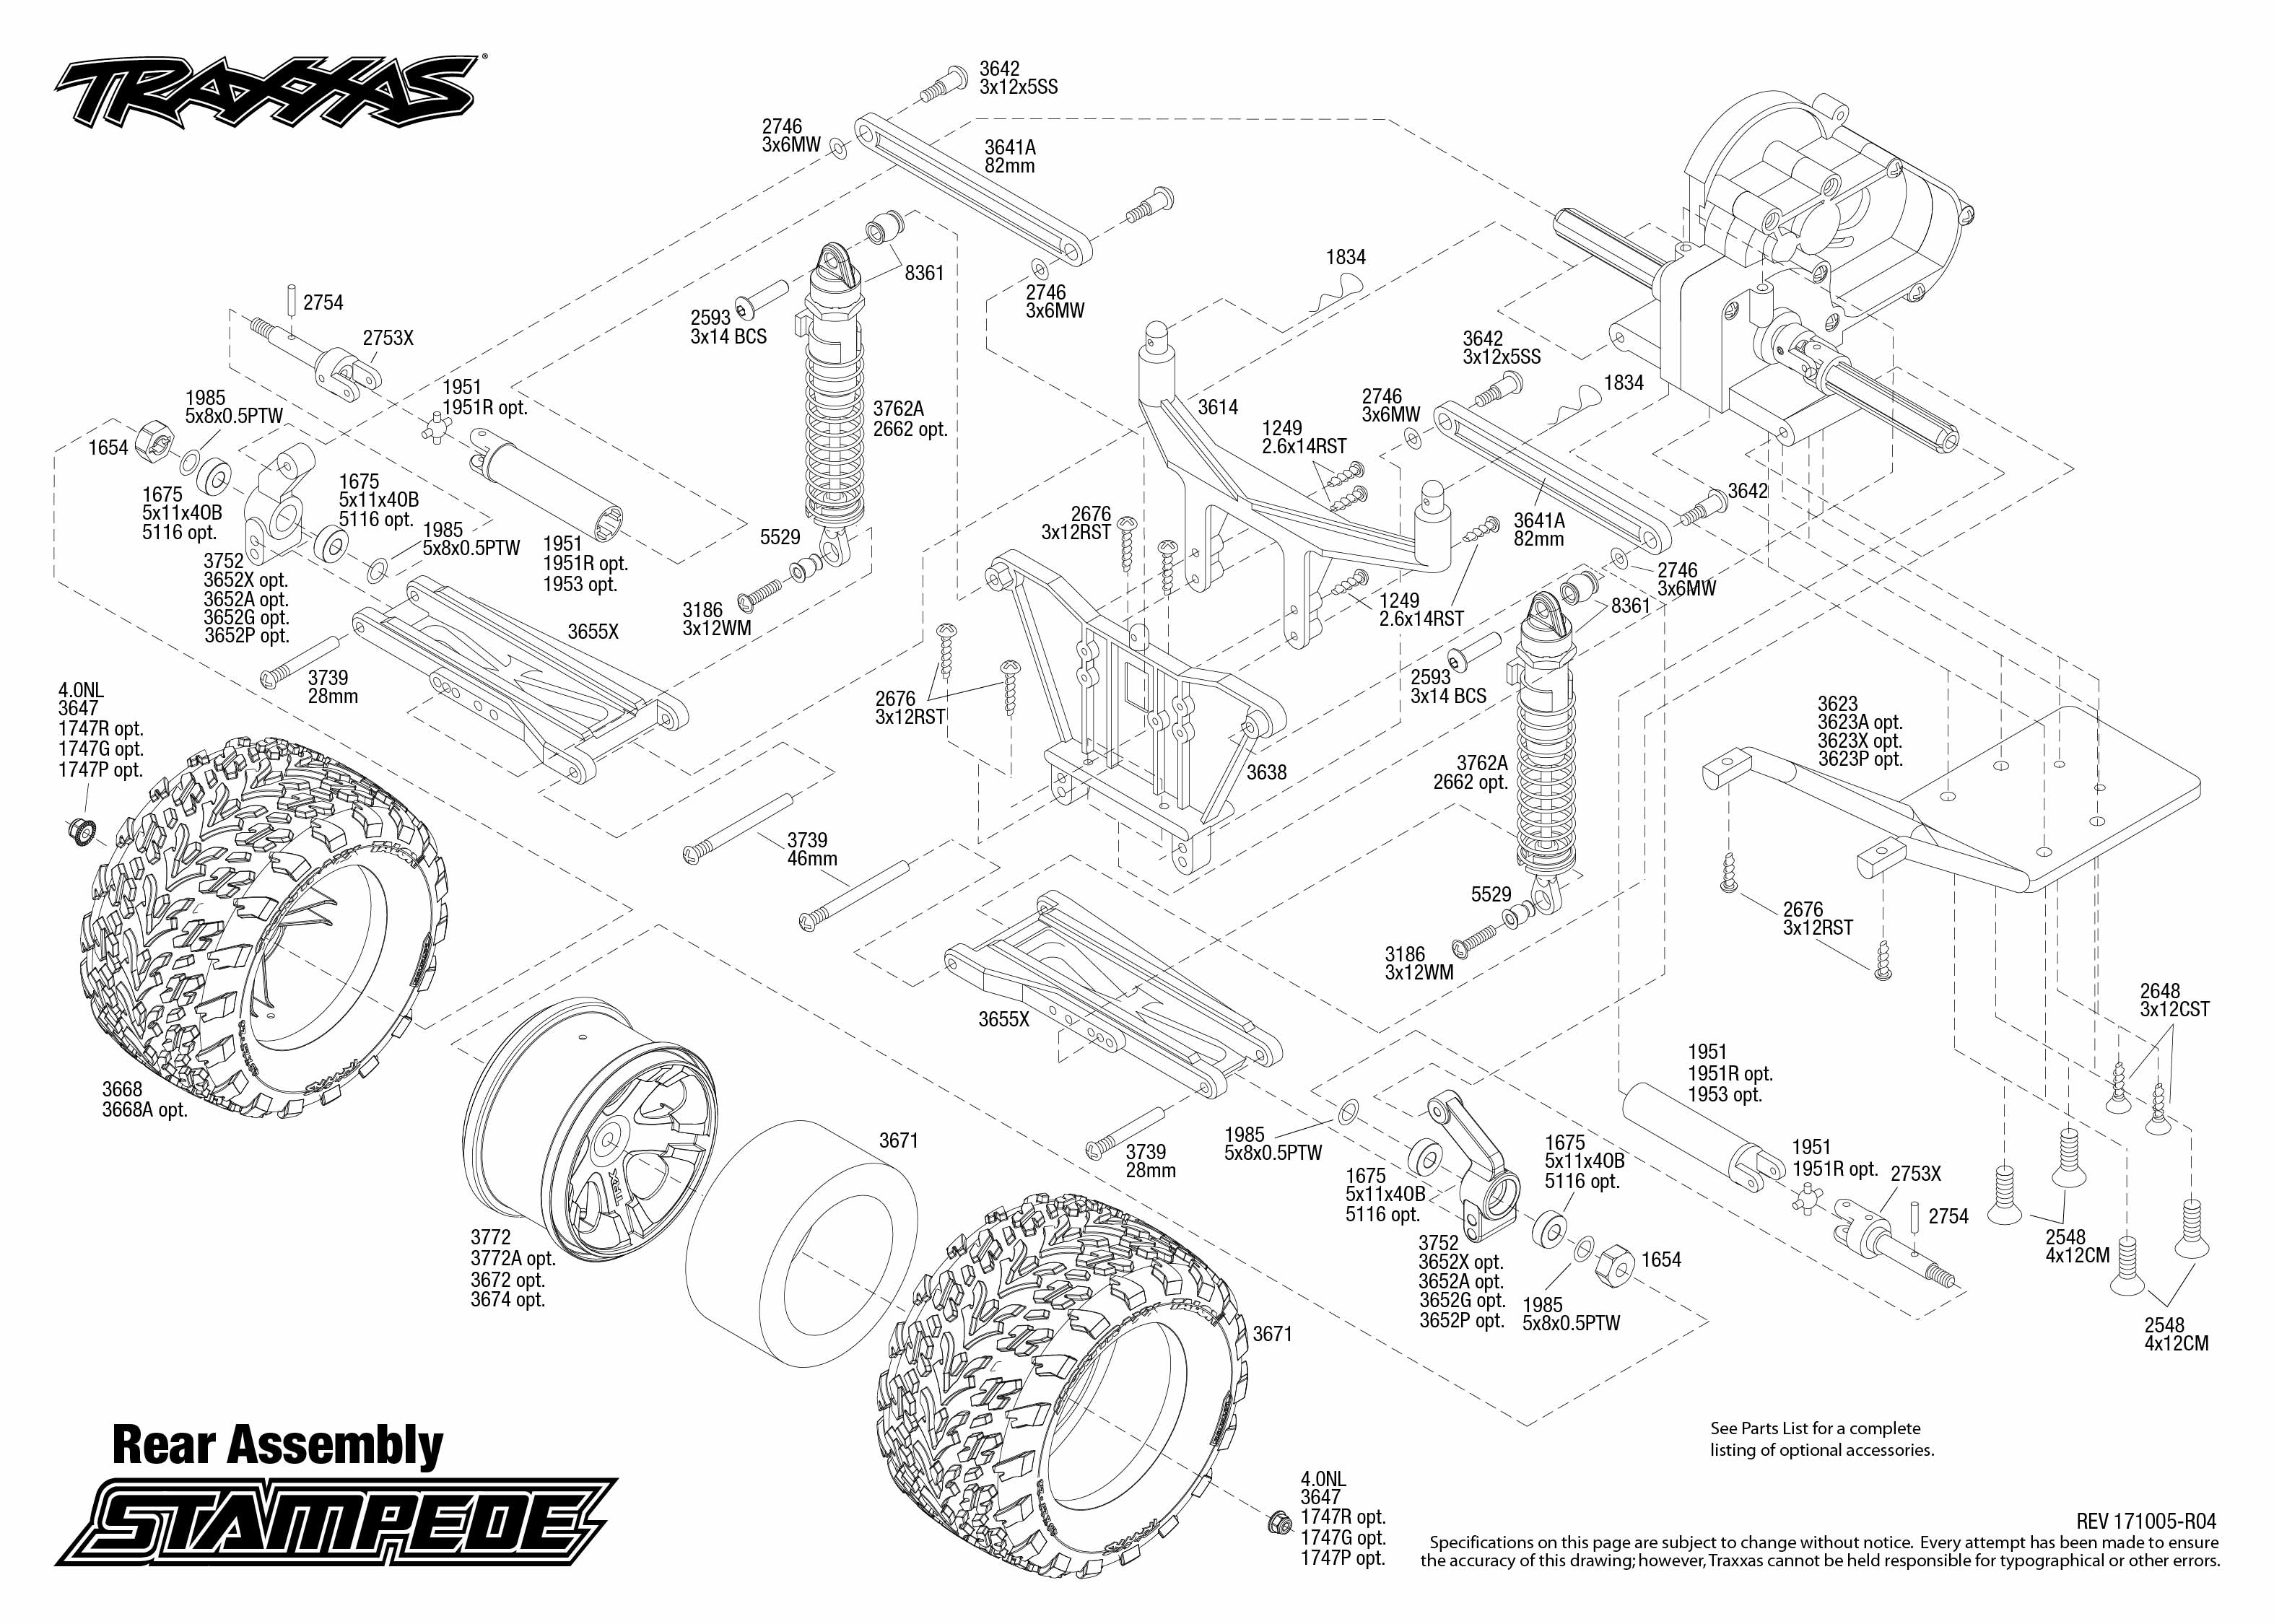 Stampede 1 Rear Assembly Exploded View